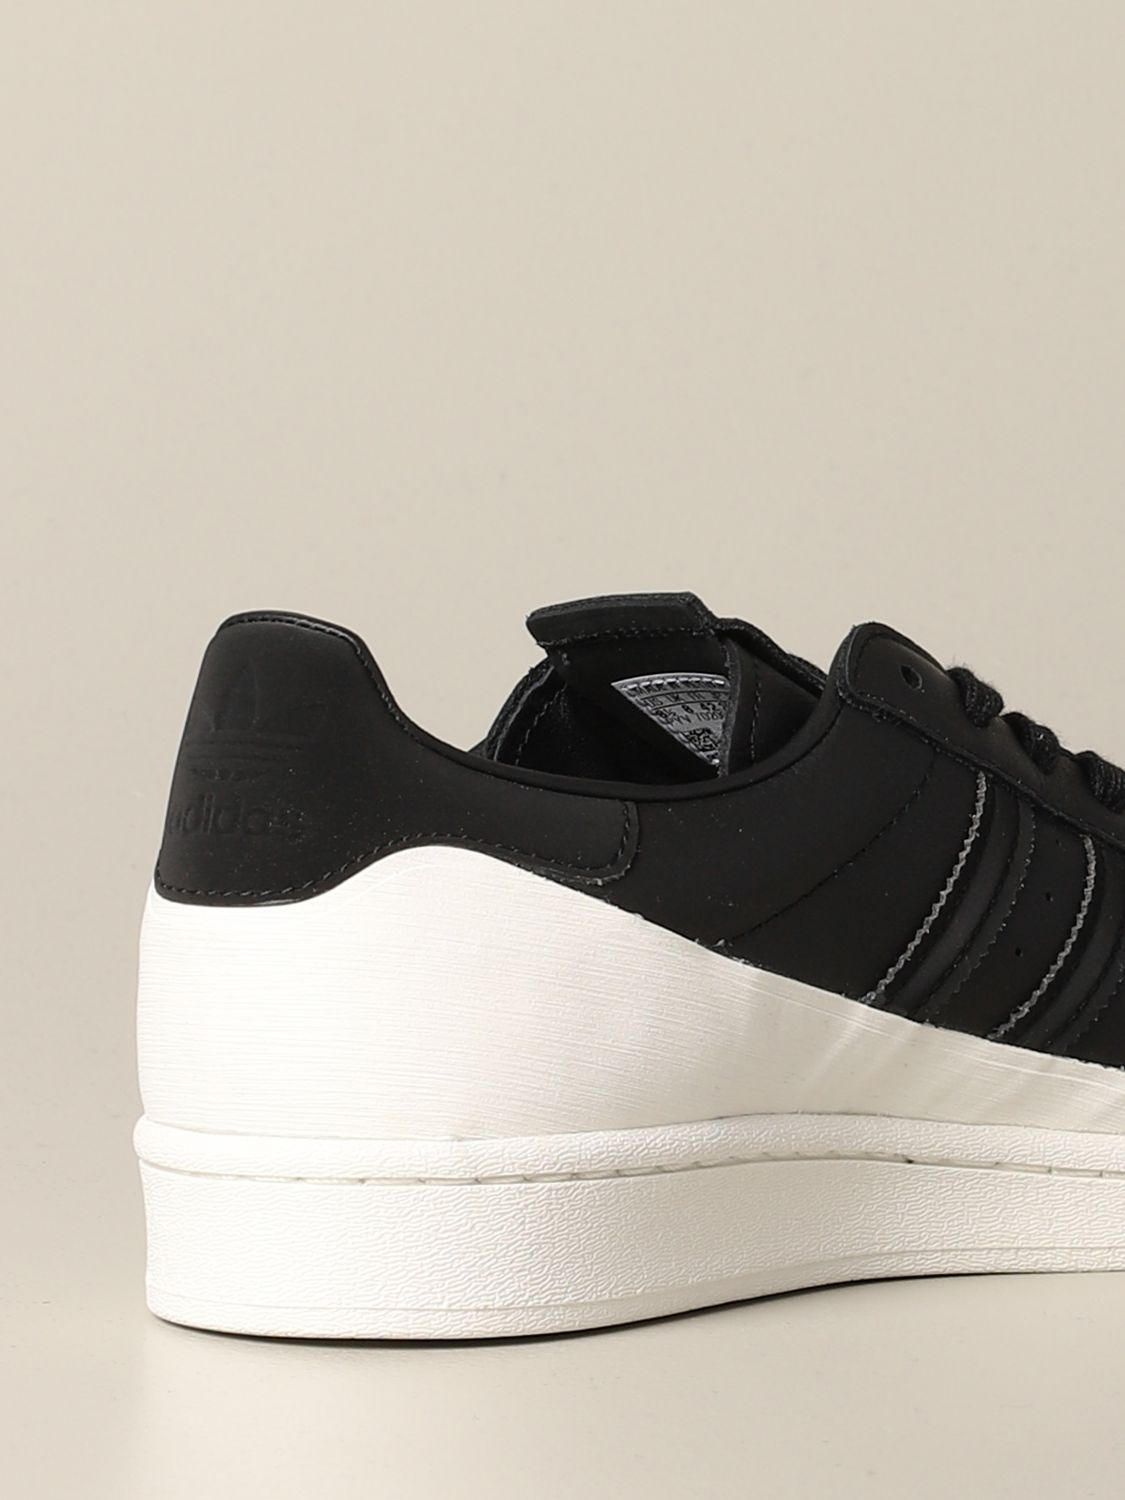 运动鞋 Adidas Originals: Adidas Originals Superstar logo 真皮运动鞋 黑色 5